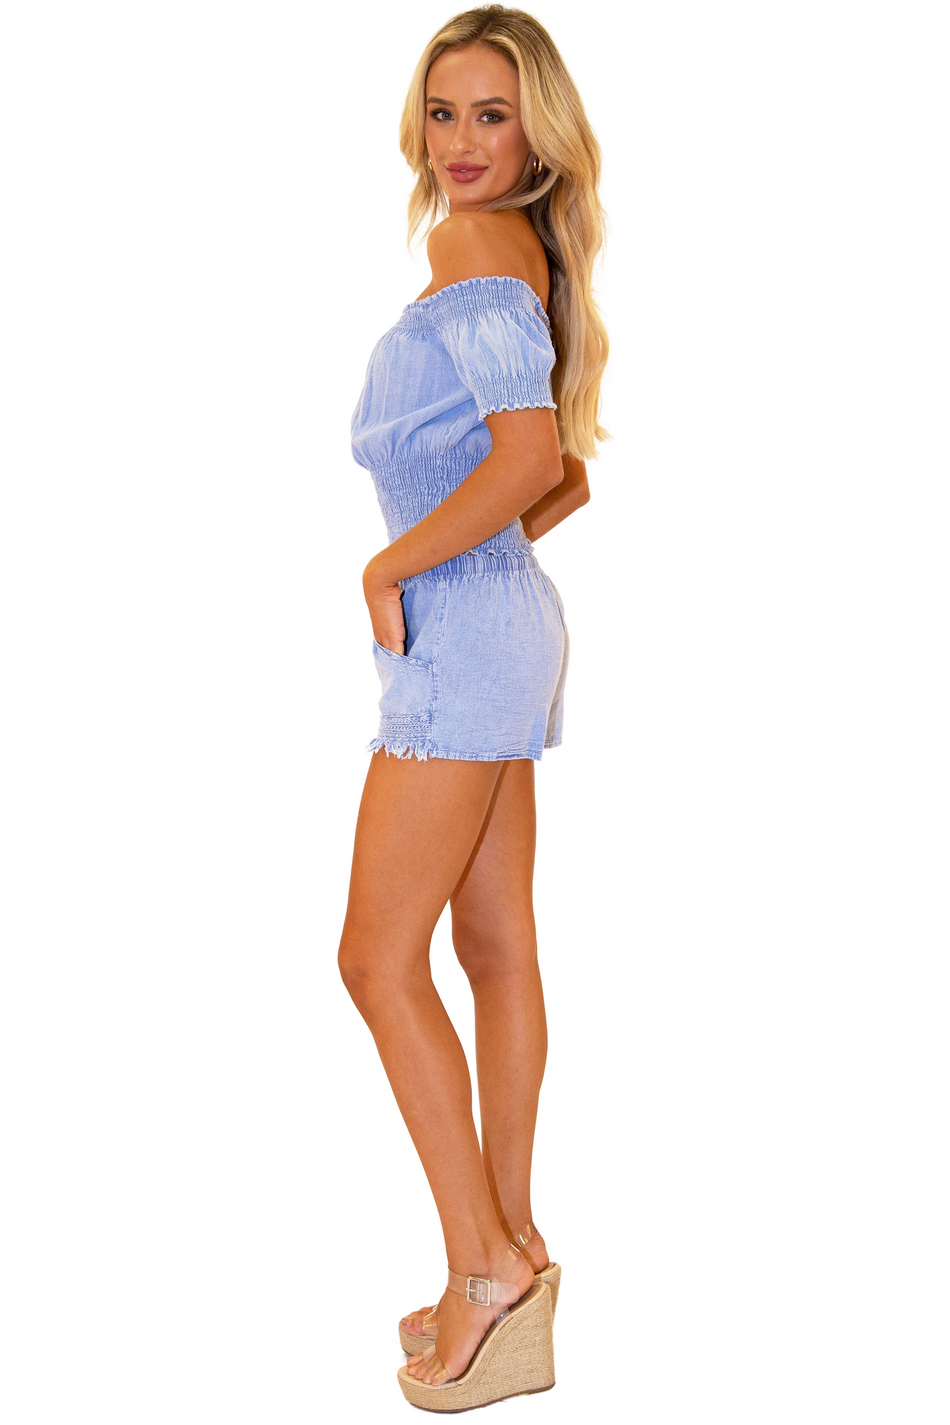 NW1075 - Blue Cotton Shorts